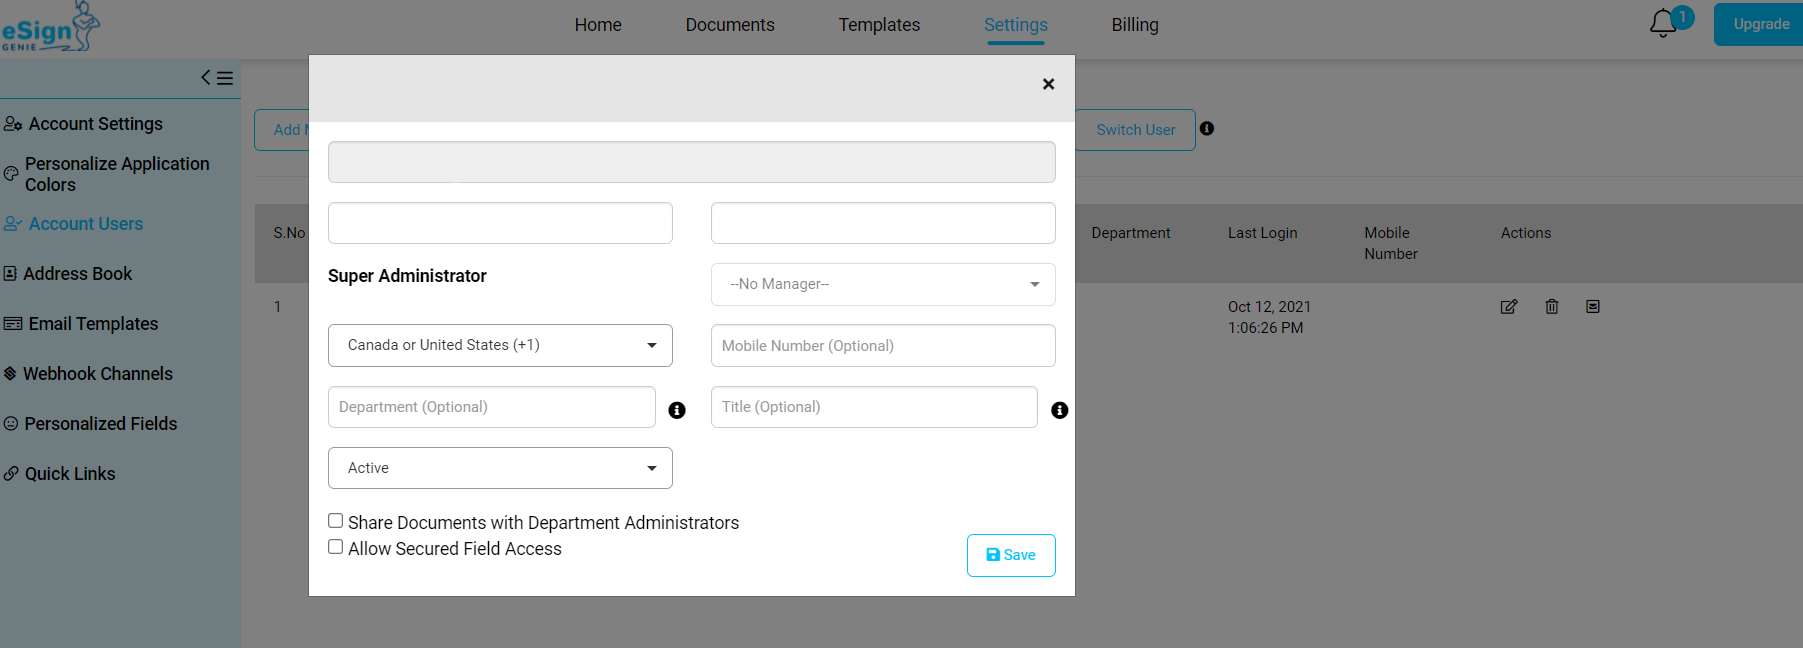 Image showing How to Easily Control User Document Access and Assign Overseeing Managers